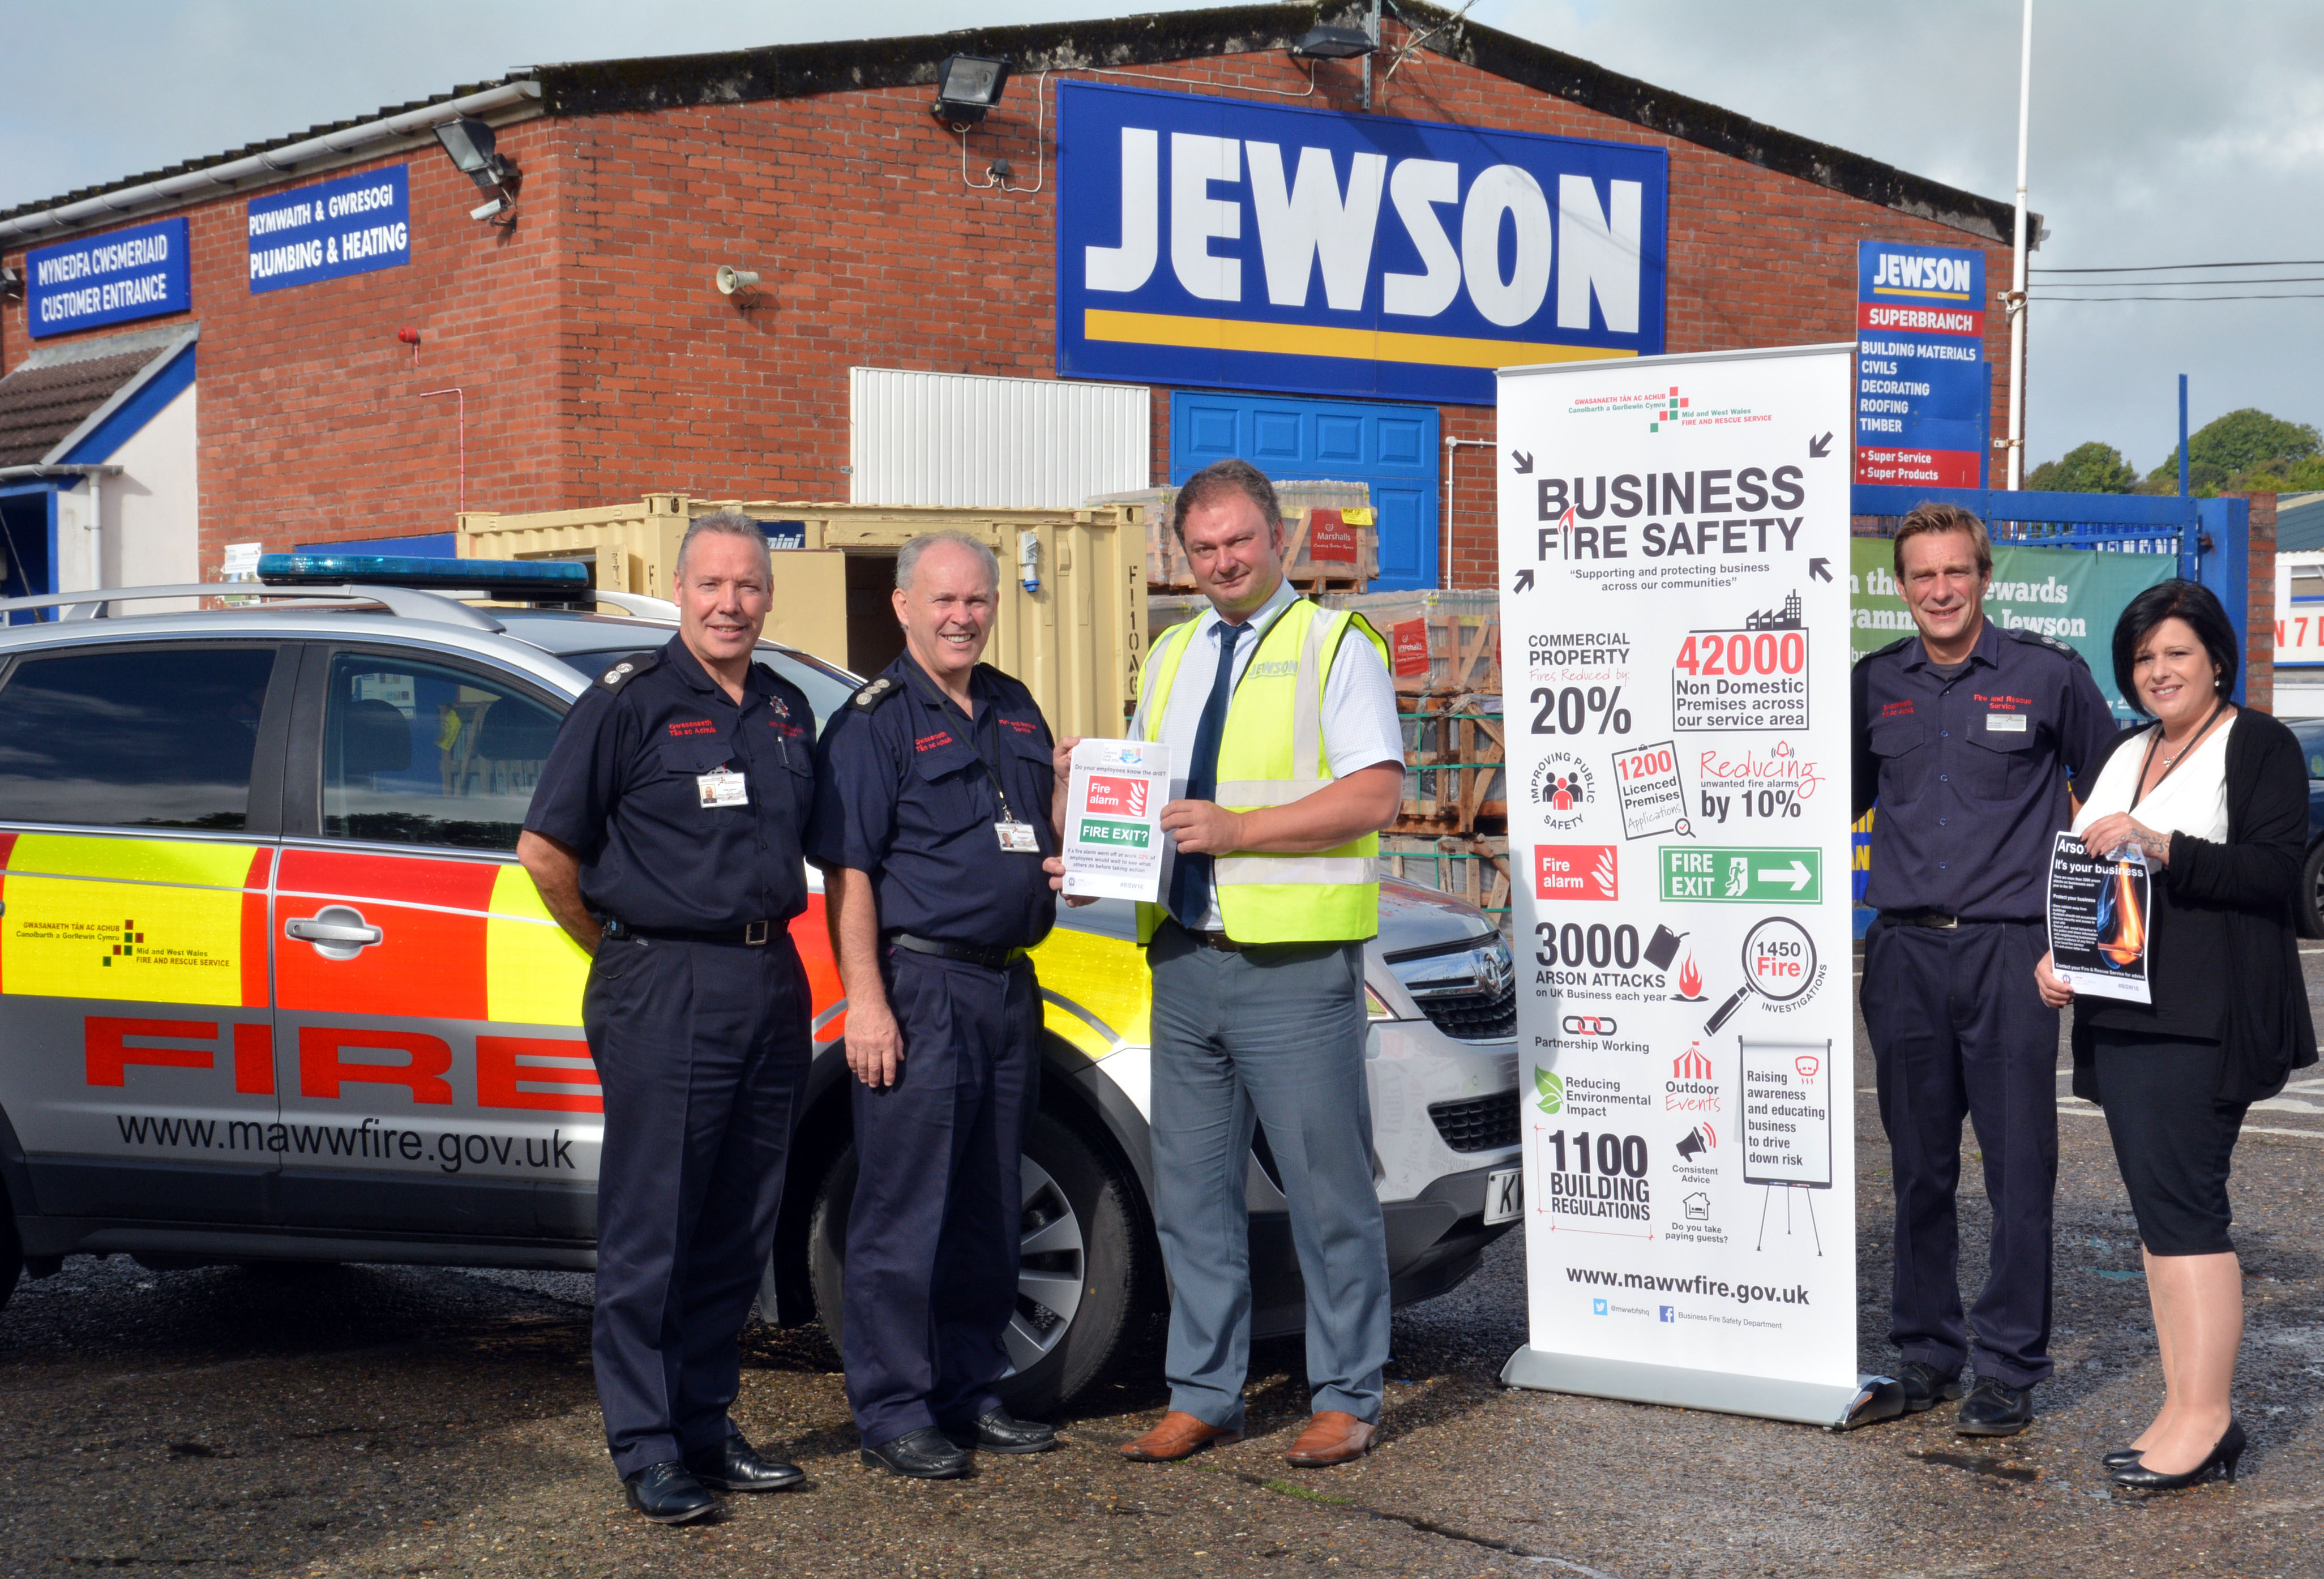 Left to right: Watch Manager Keith Jenkins, Station Manager Rob Bellerby, Jewson Department Manager Andrew Wilson, Watch Manager Pete Swales, Business Fire Safety Building Regulation Coordinator Kay Thomas.